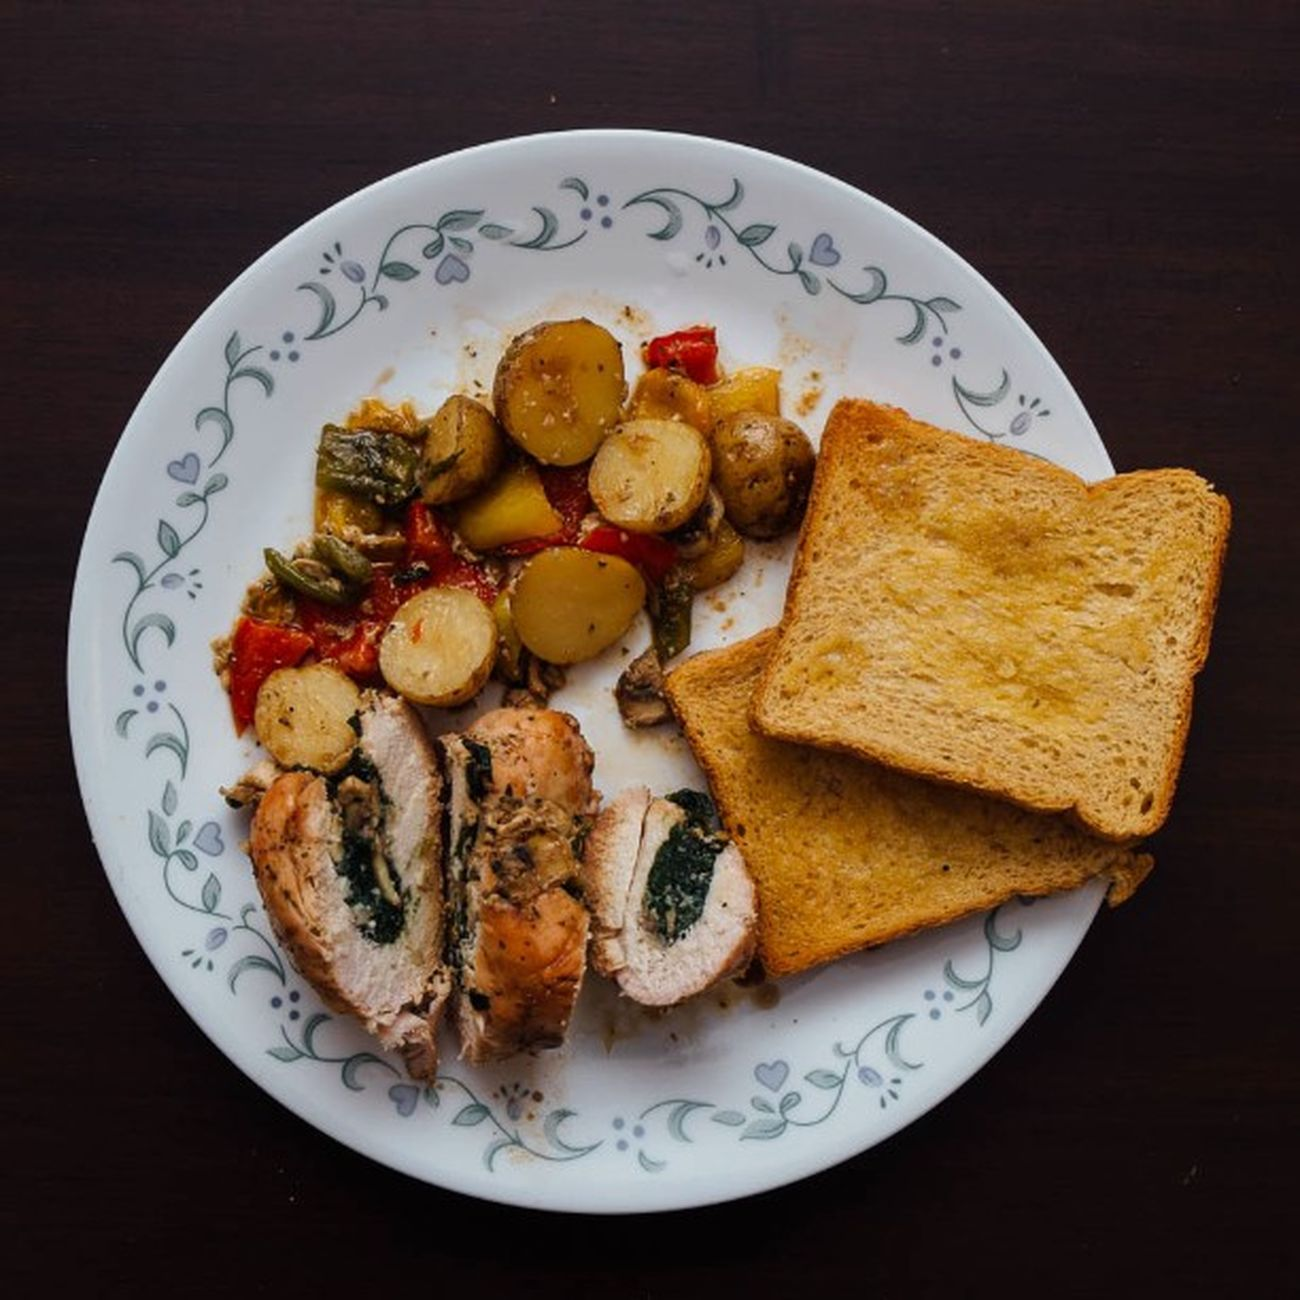 Honey glazed chicken stuffed with Mushroom and Spinach served with assorted Veggies done by the wife Whatsfordinner Stuffedchicken Food Fujifilm Fuji Xe1